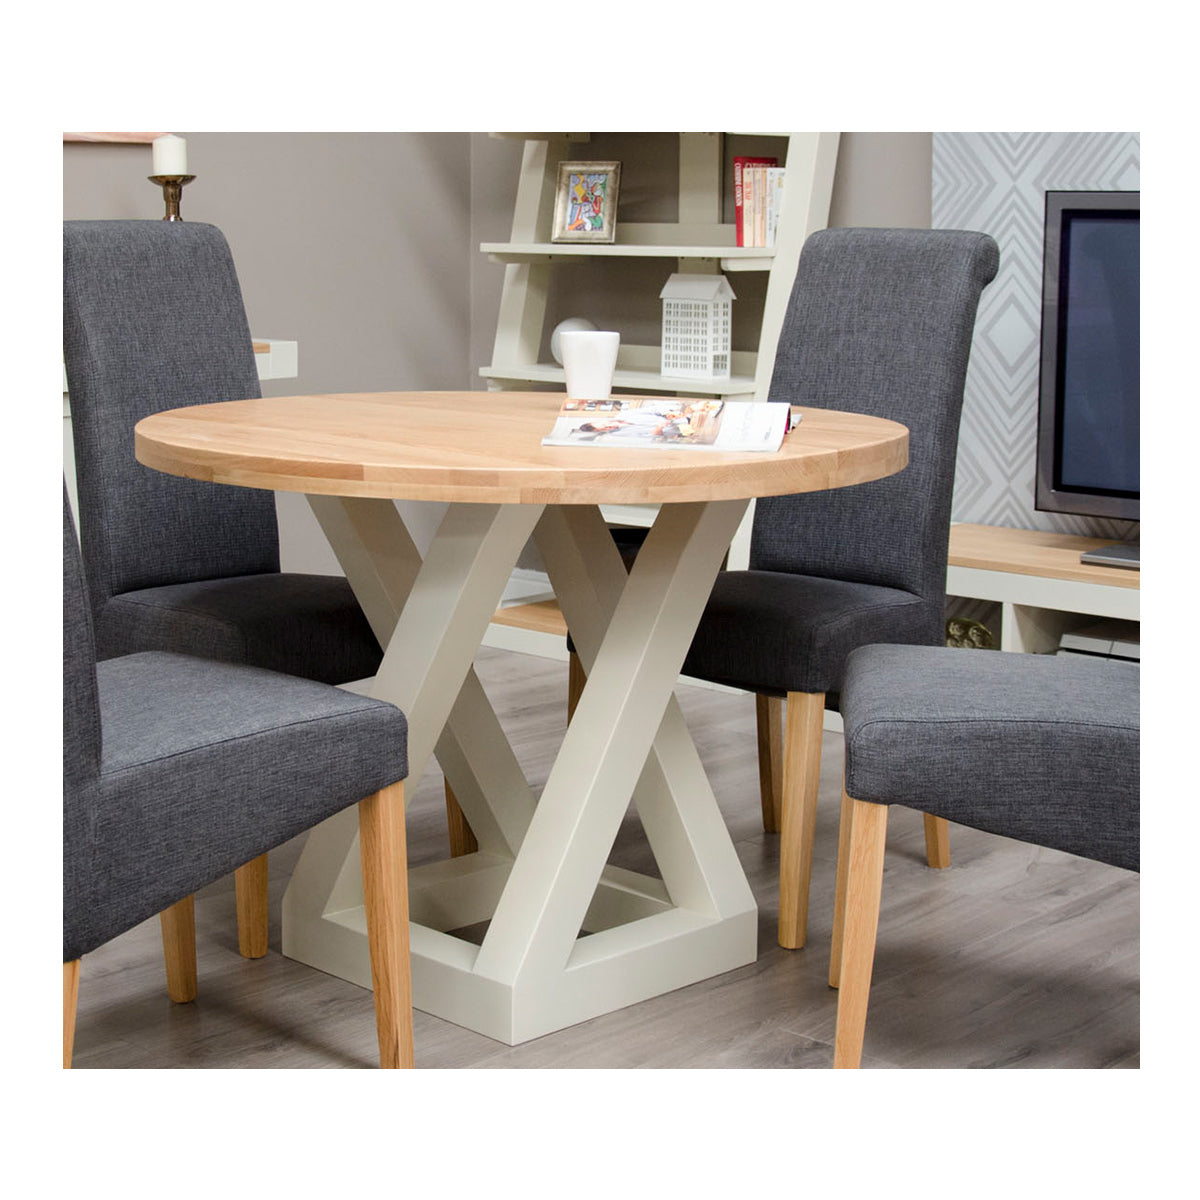 Zenith Painted Oak Round Dining Table